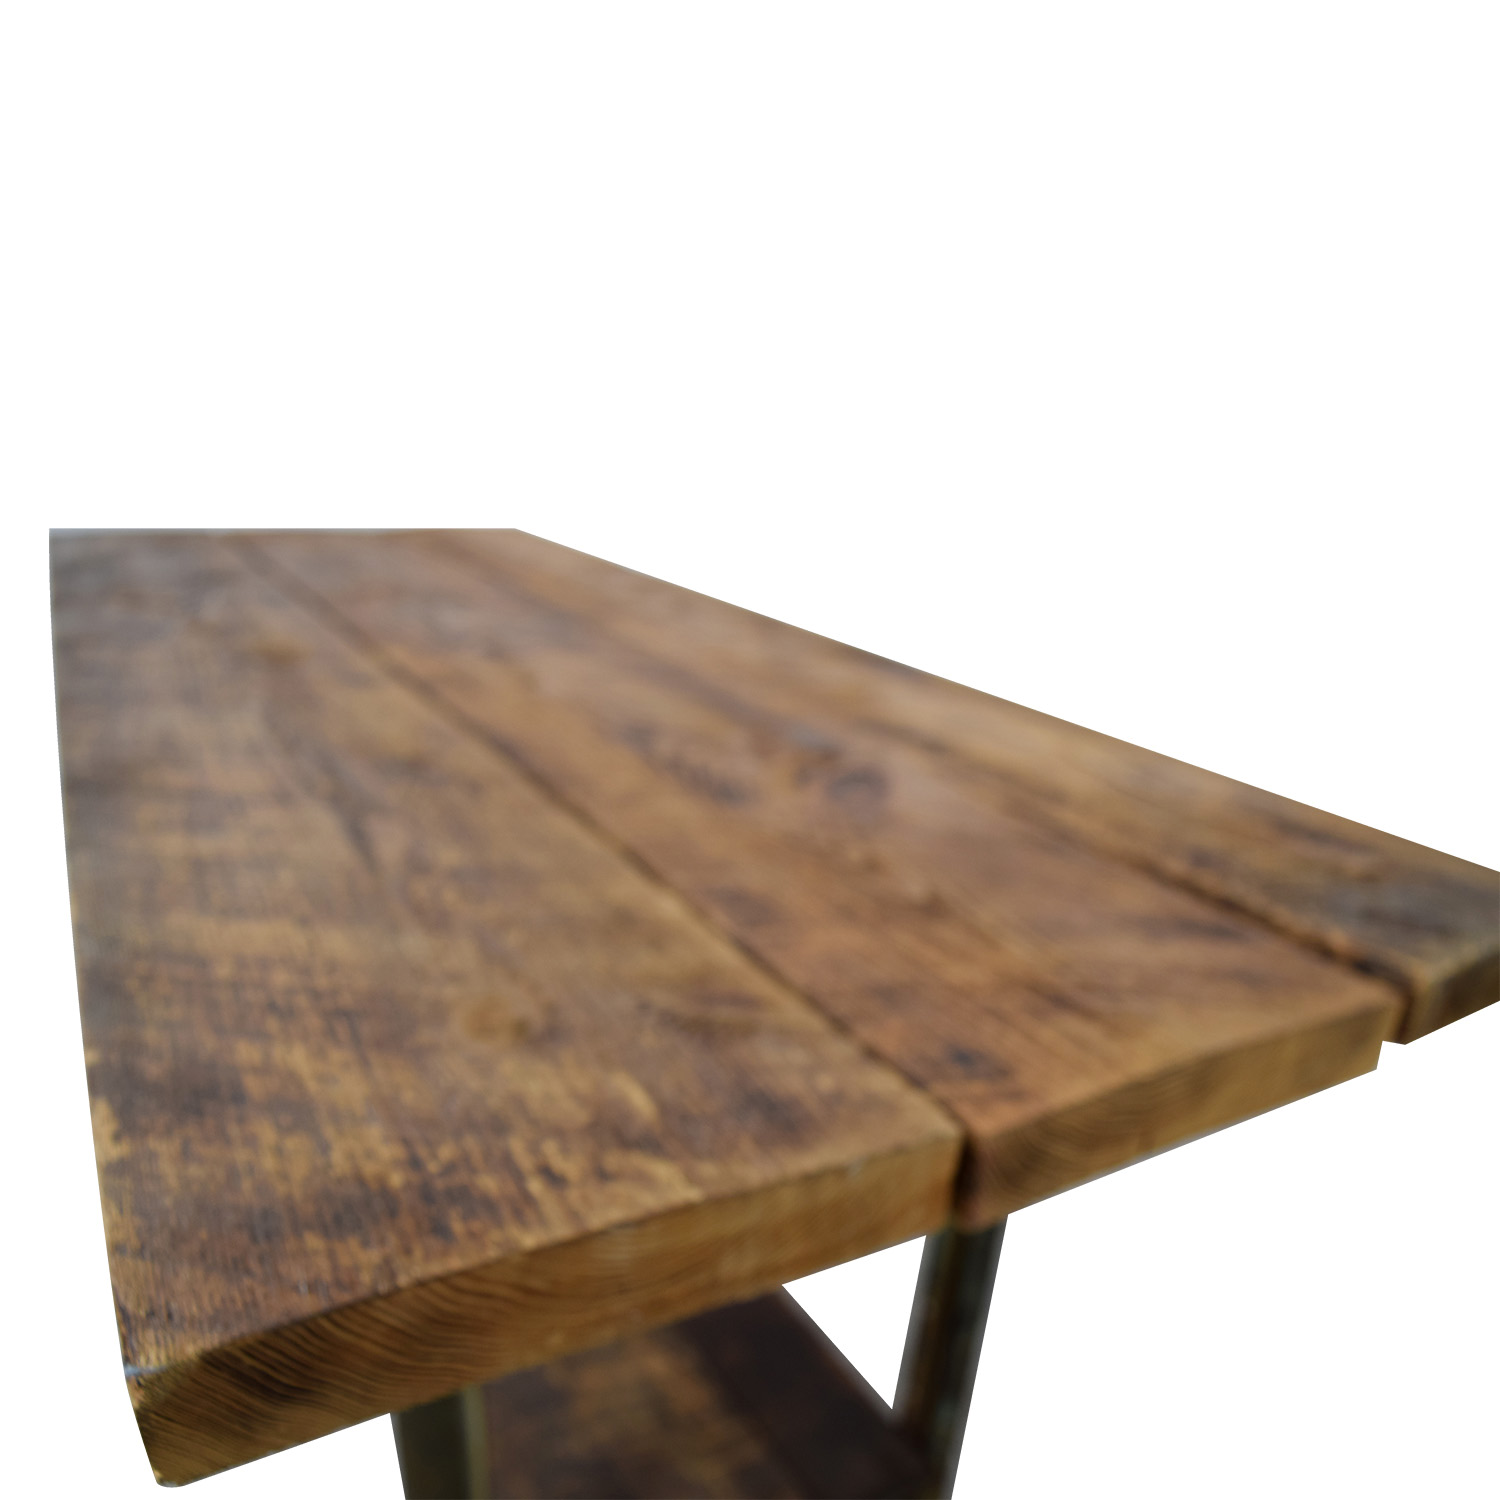 Brooklyn Flea Market Brooklyn Flea Market Rustic Reclaimed Wood Table discount